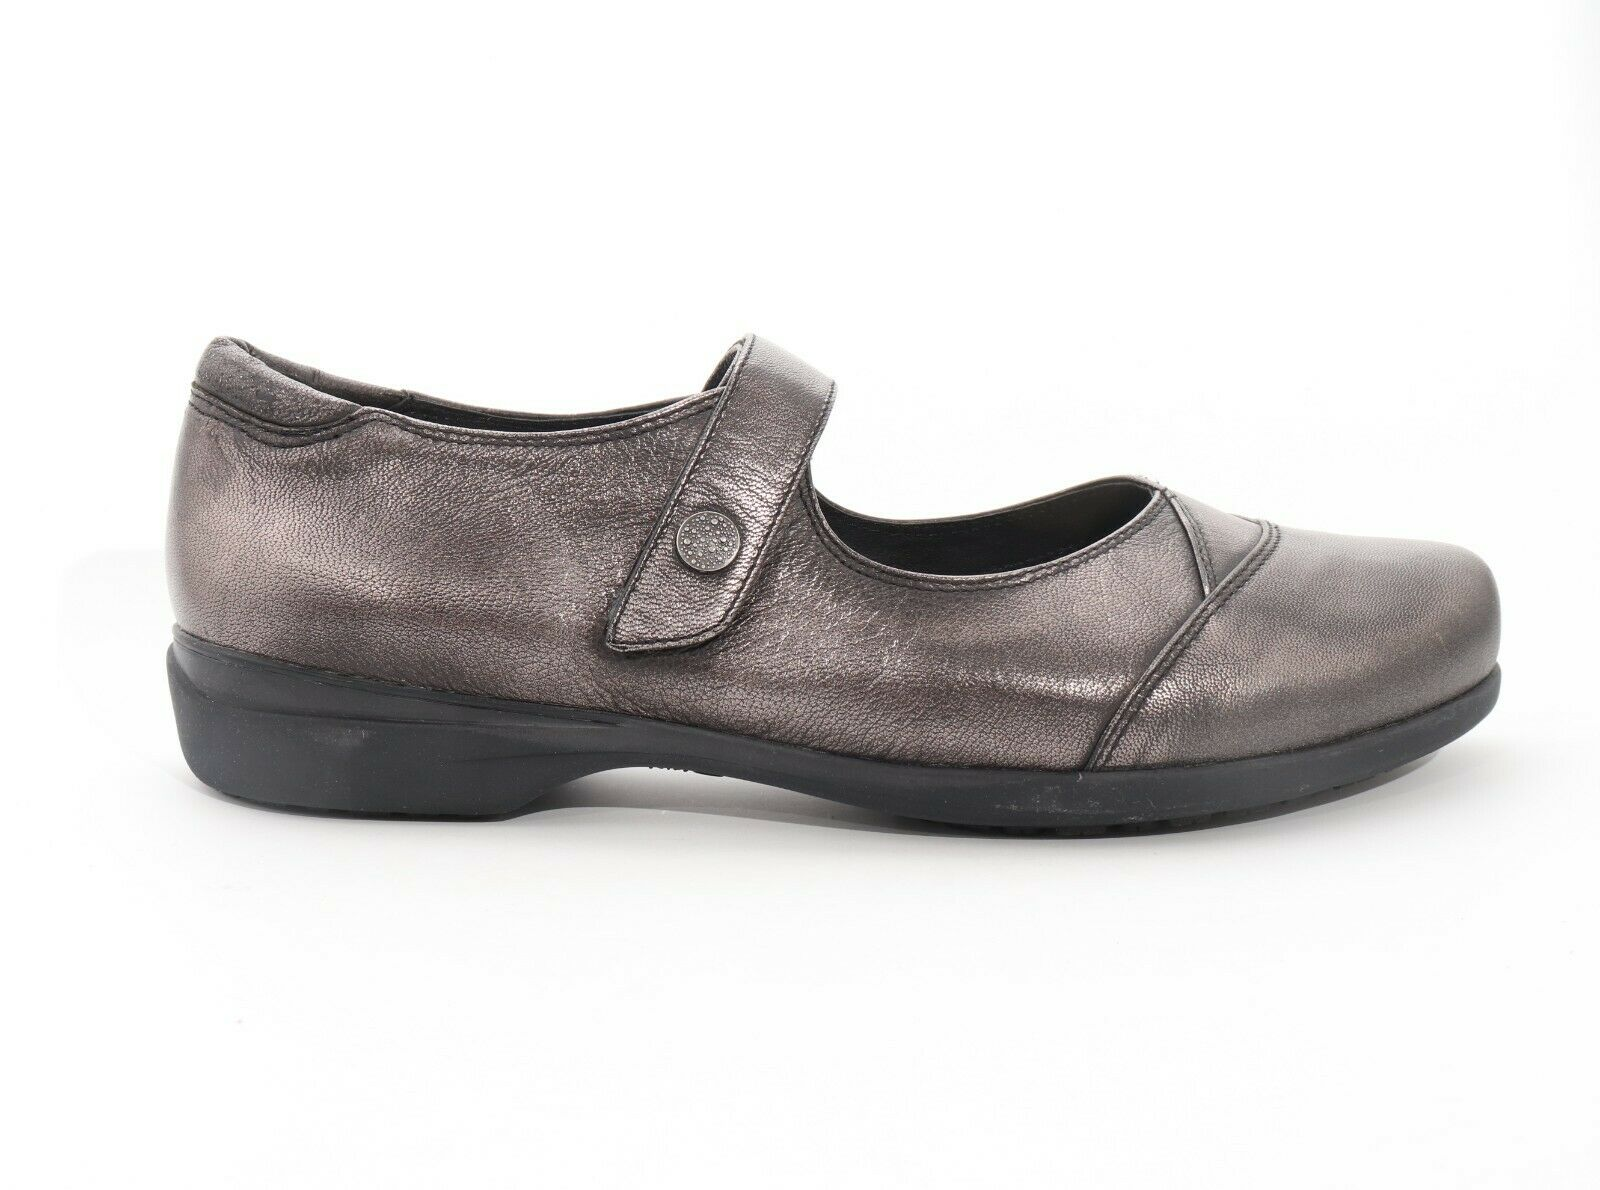 Abeo Abby Mary Janes Slip Resistant Pewter Women's Size 7